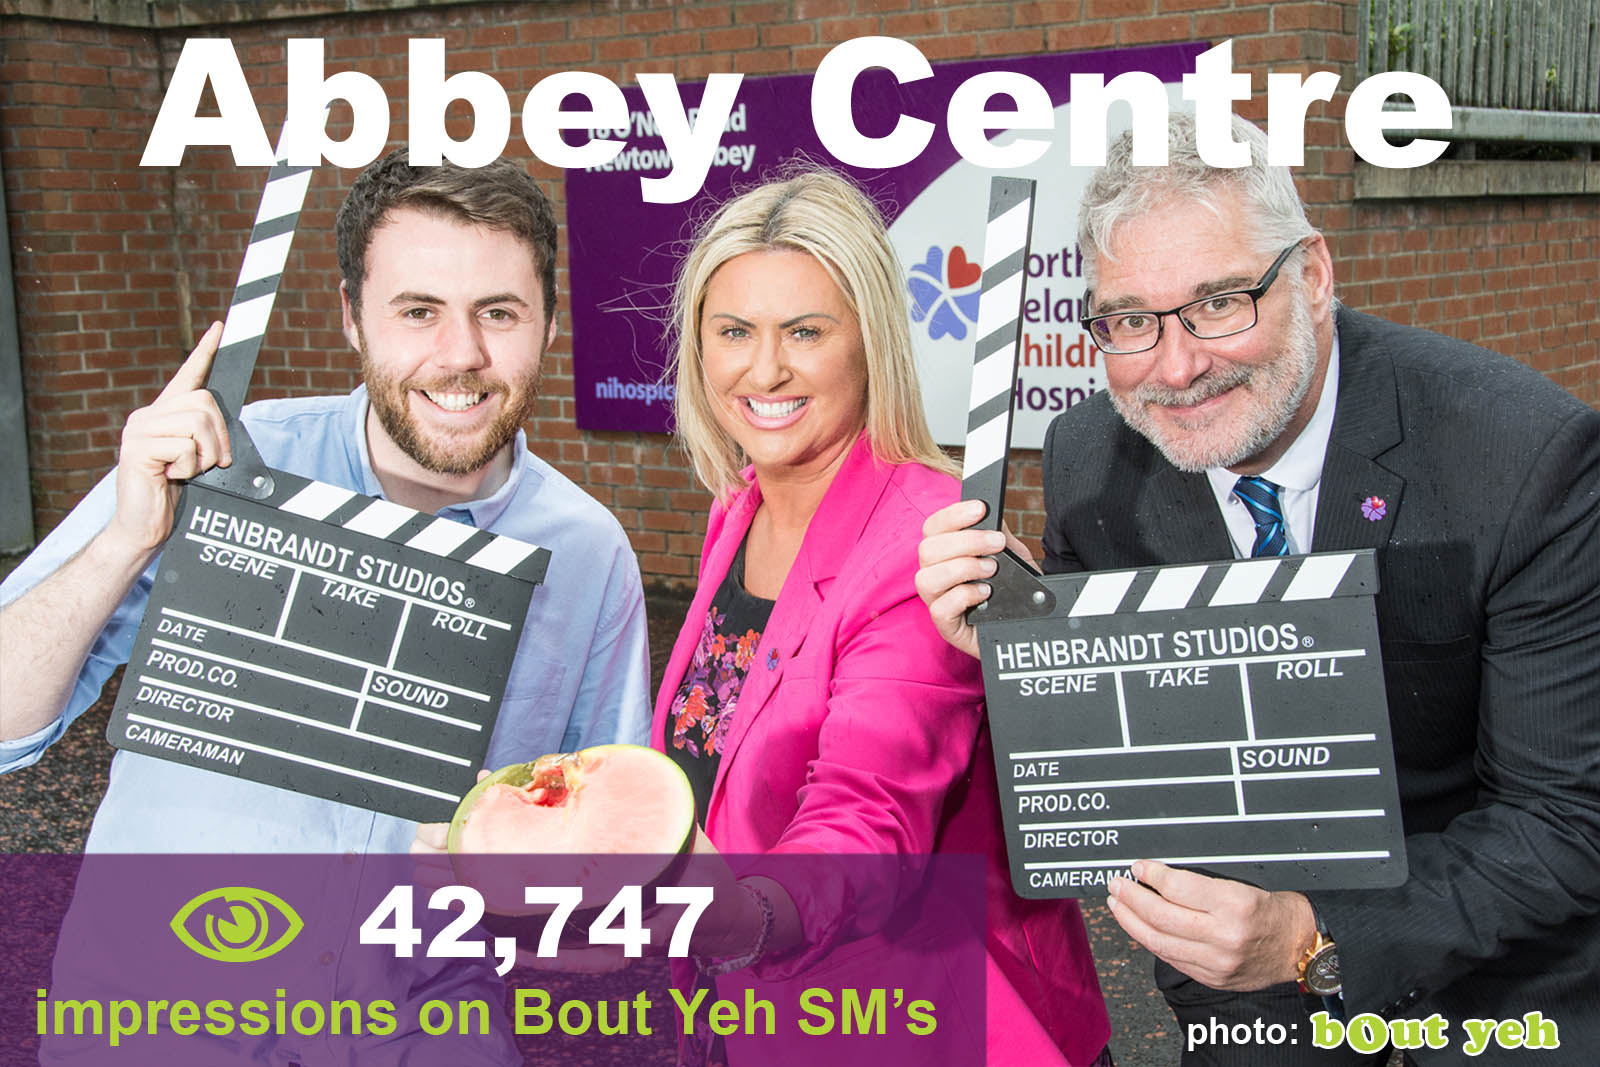 Social Media Marketing Consultants Belfast - Abbey Centre SMM campaign overview photo. Photo by Bout Yeh used in a Social Media Marketing campaign across Bout Yeh's Social Media platforms for Abbey Centre Northern Ireland.